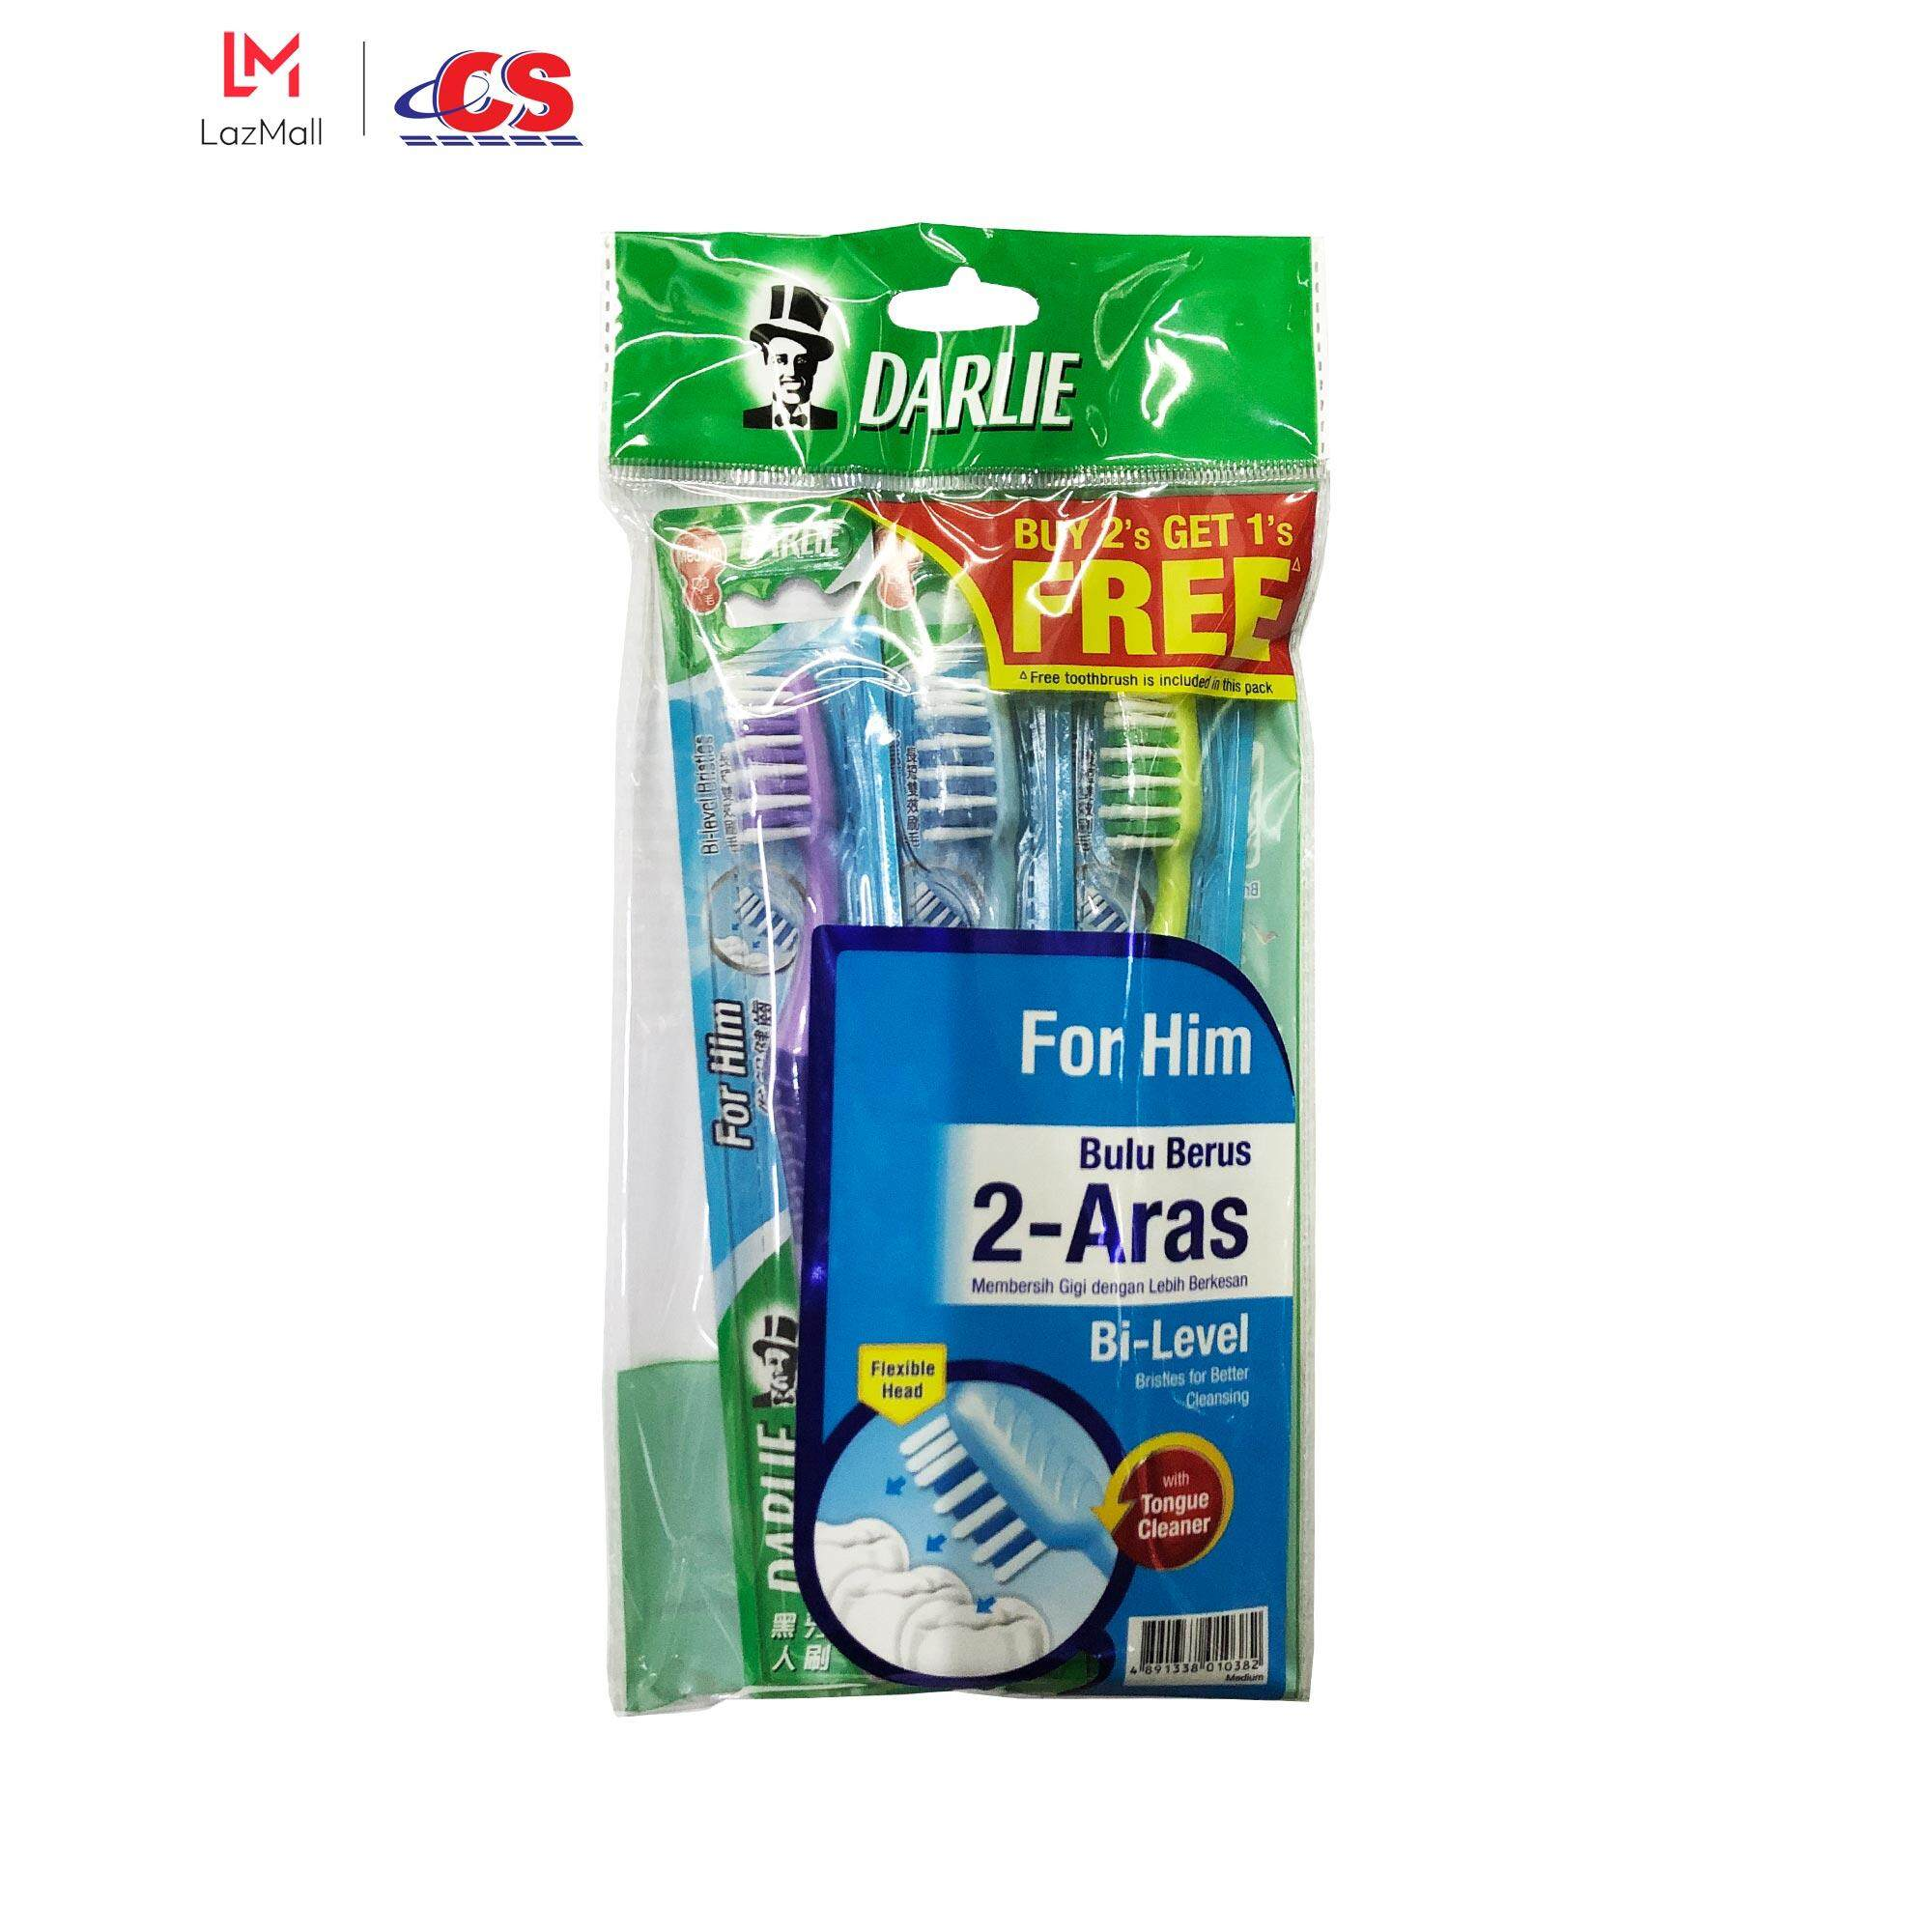 DARLIE Toothbrush For Him Buy 2 Free 1